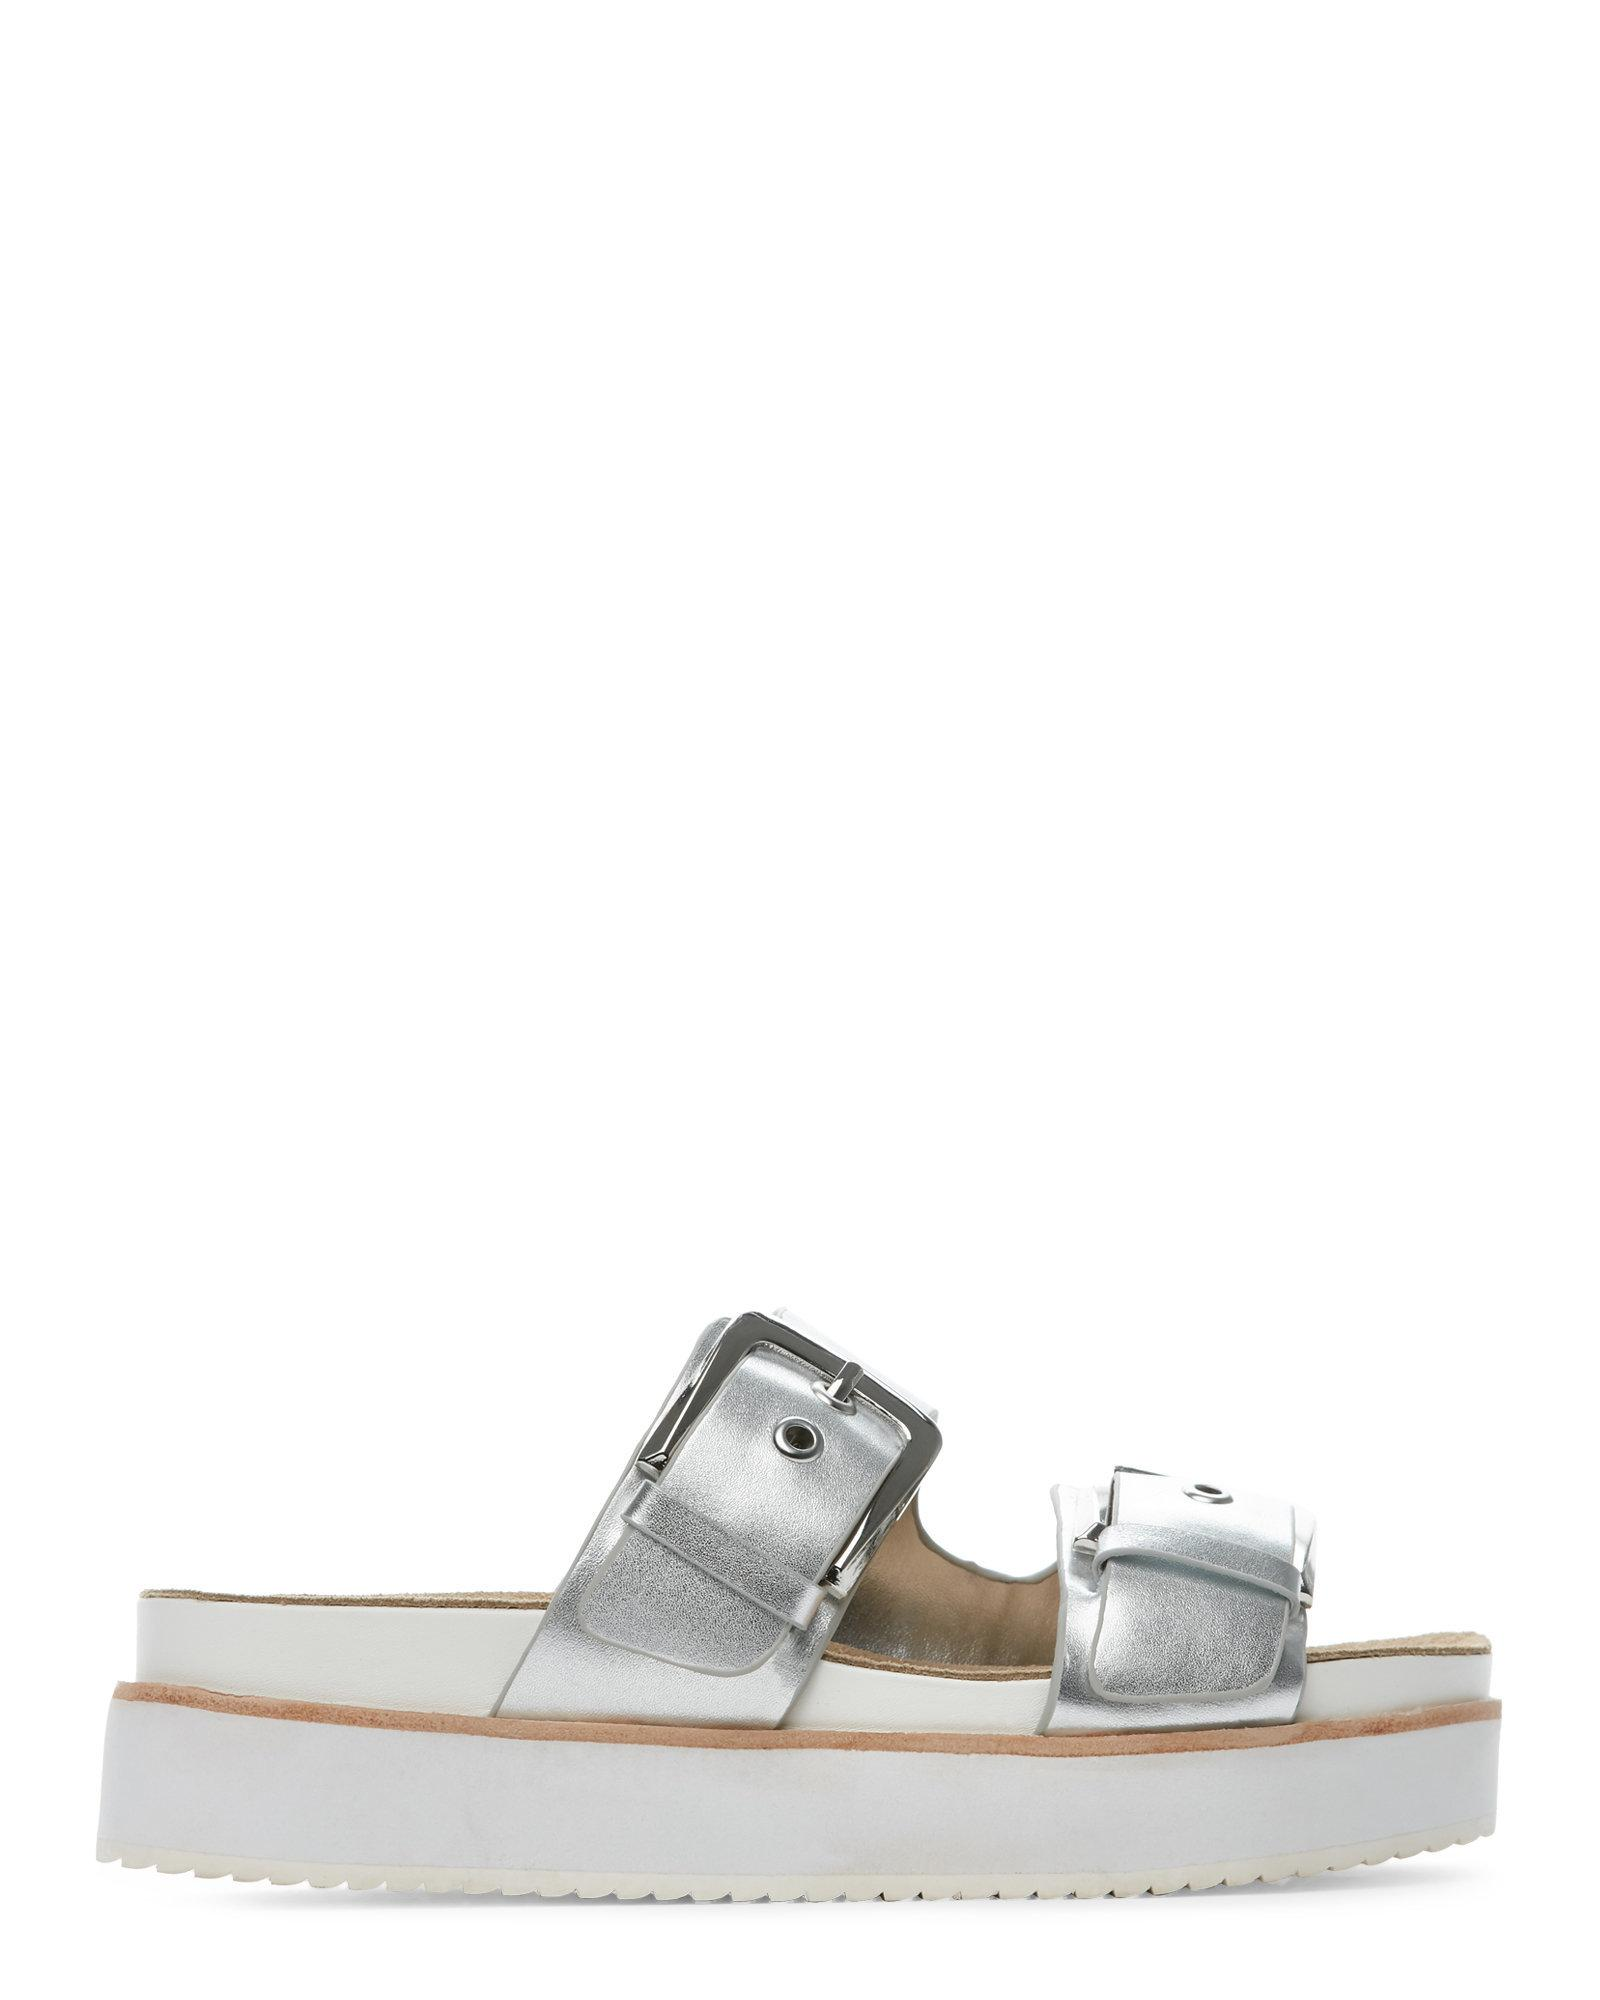 f8be47ccb8c Lyst - Steve Madden Silver Pate Platform Footbed Sandals in Metallic